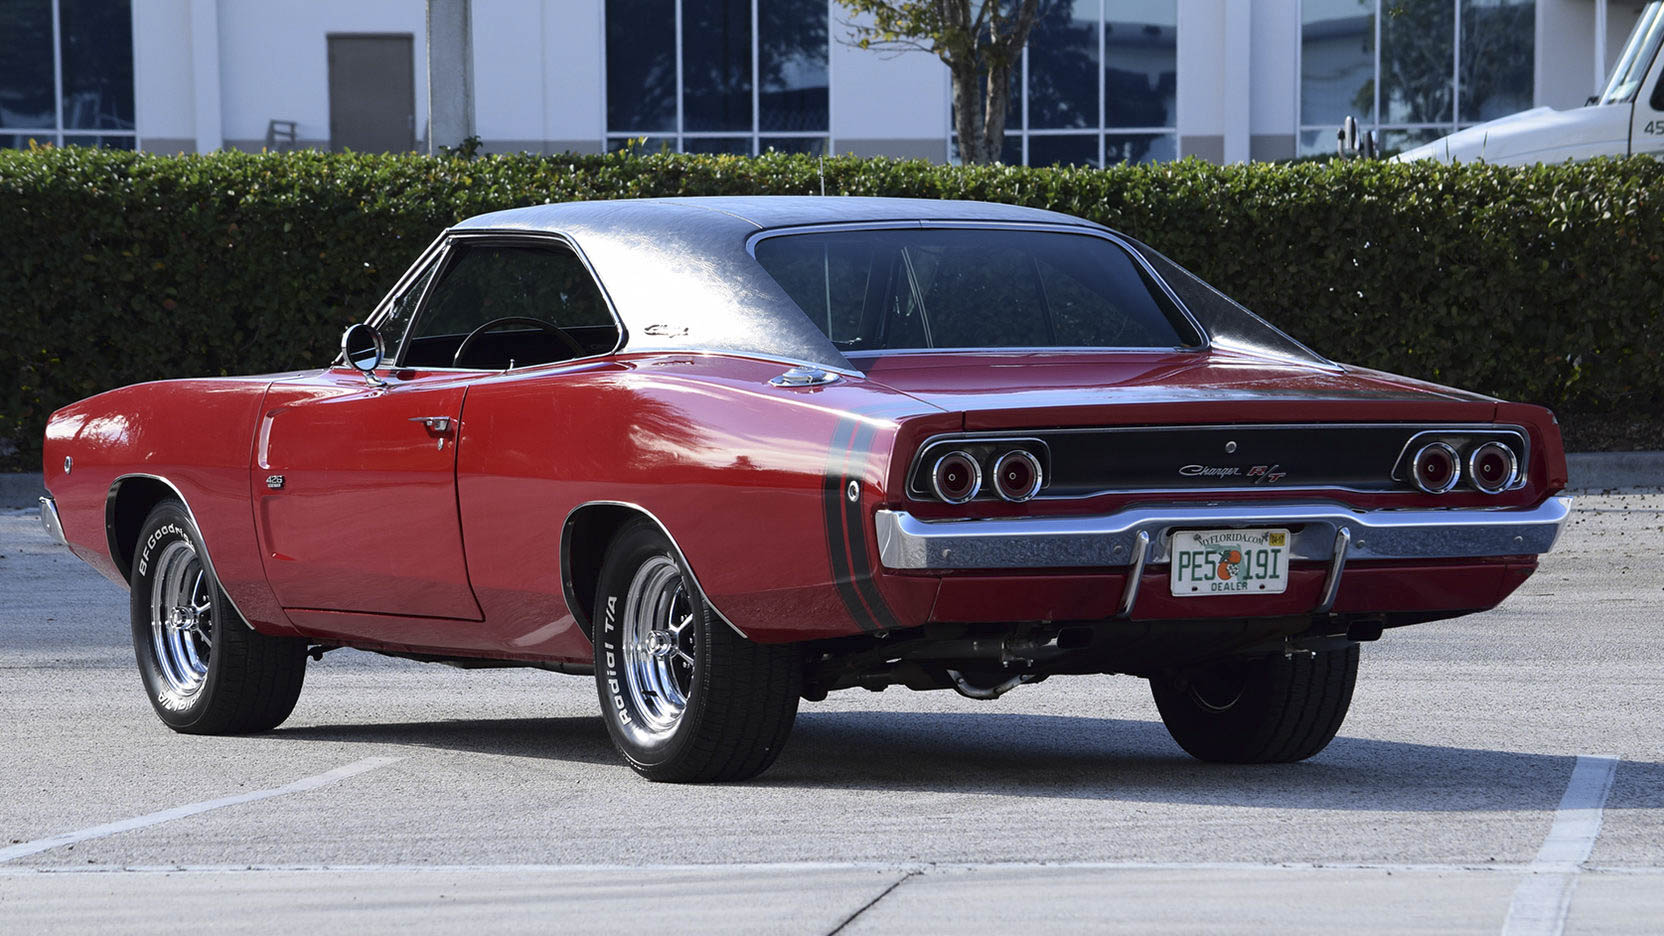 1968 Dodge Charger R/T rear